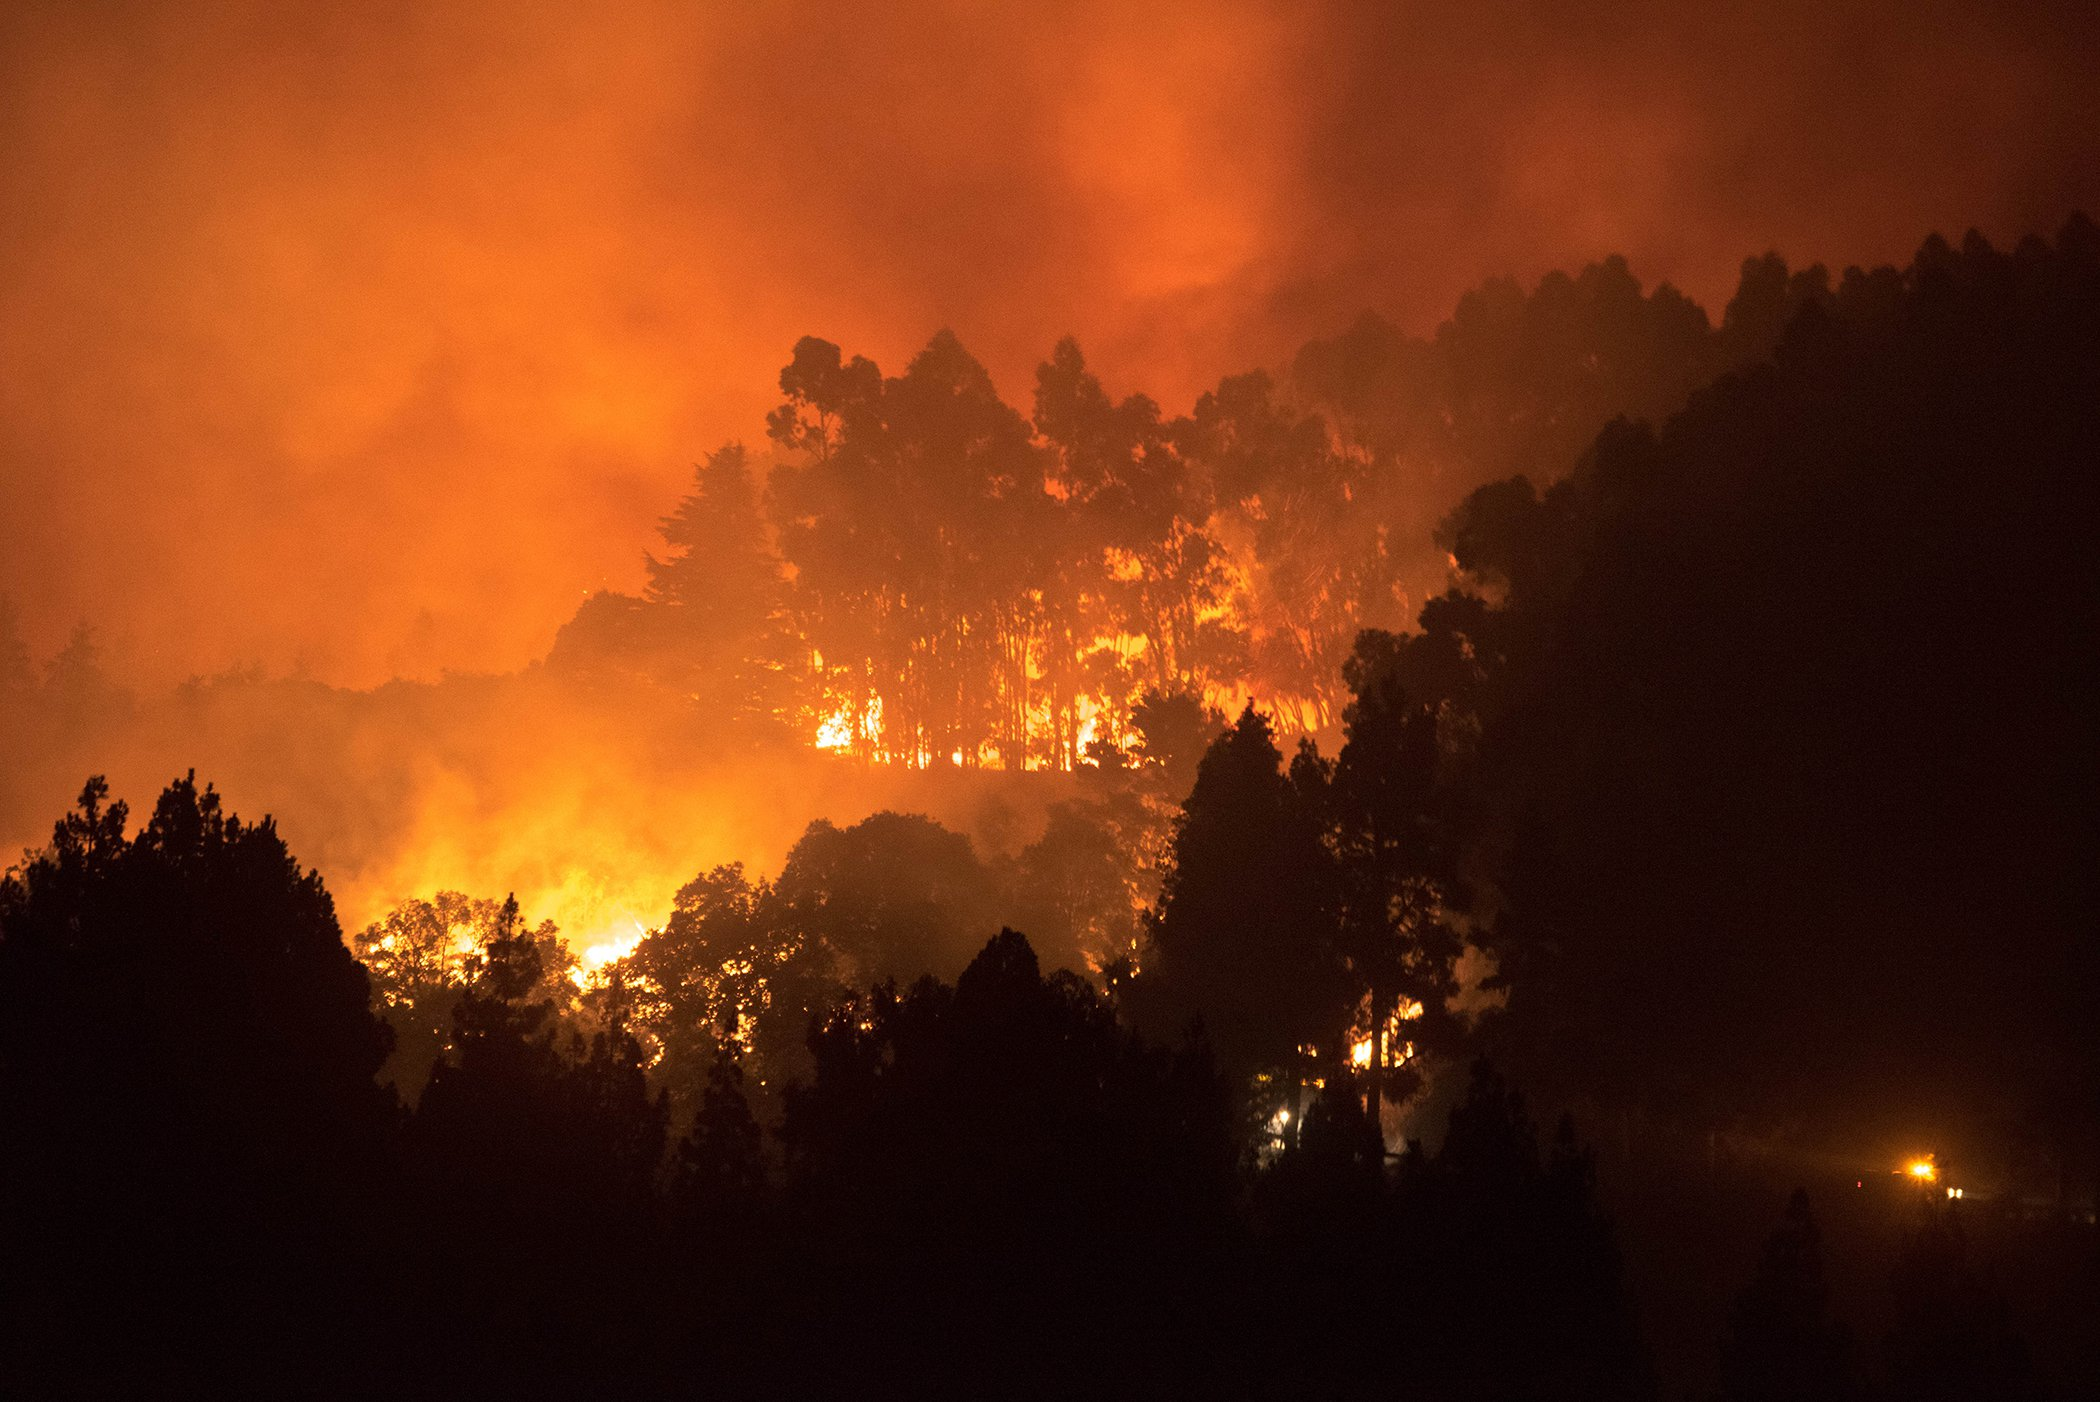 Spain-Wildfires-Climate-Change-Extreme-Temperatures.jpg